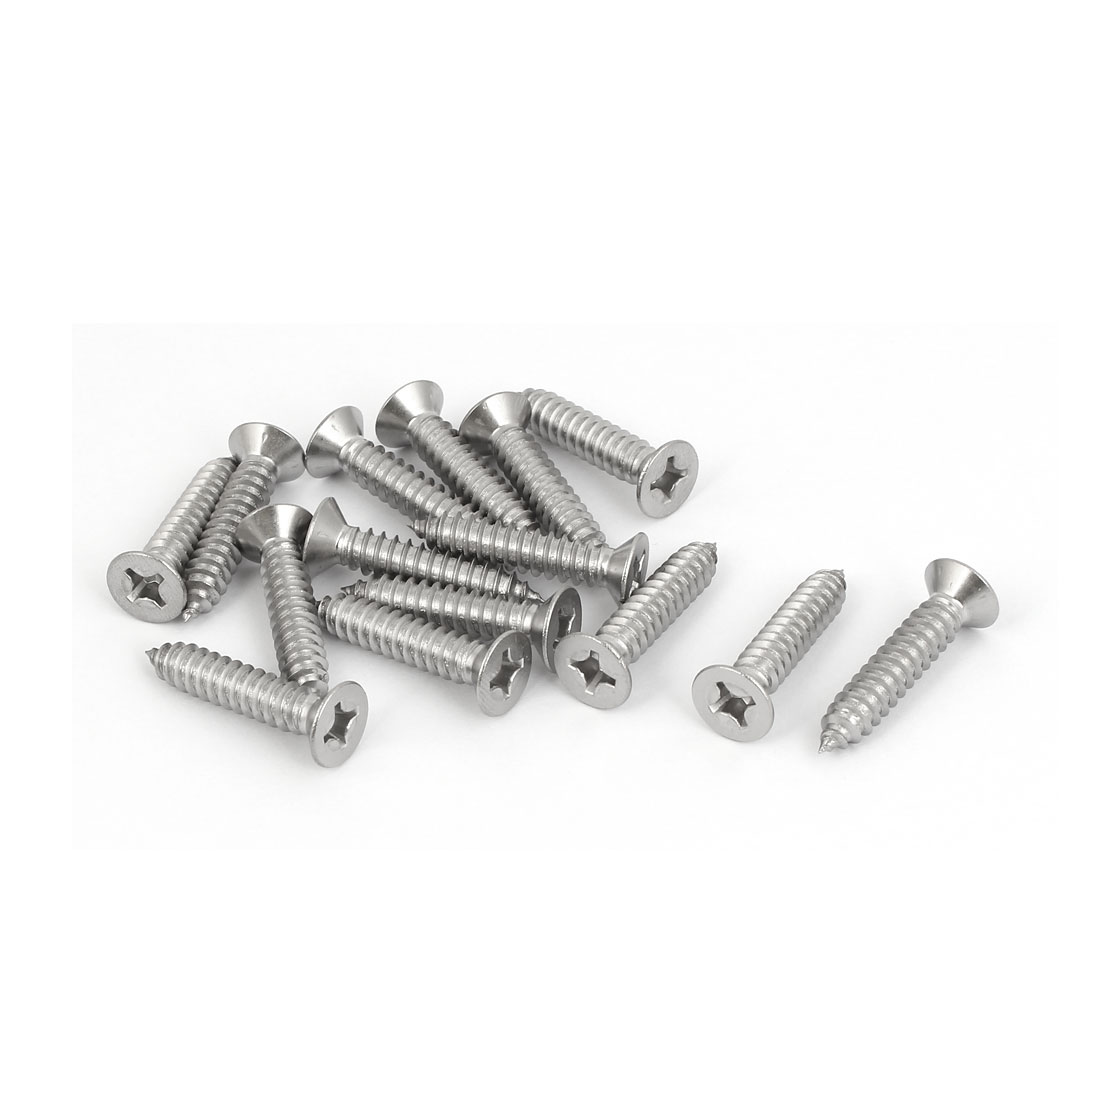 M6.3x32mm 316 Stainless Steel Flat Head Phillips Self Tapping Screws Bolts 15pcs